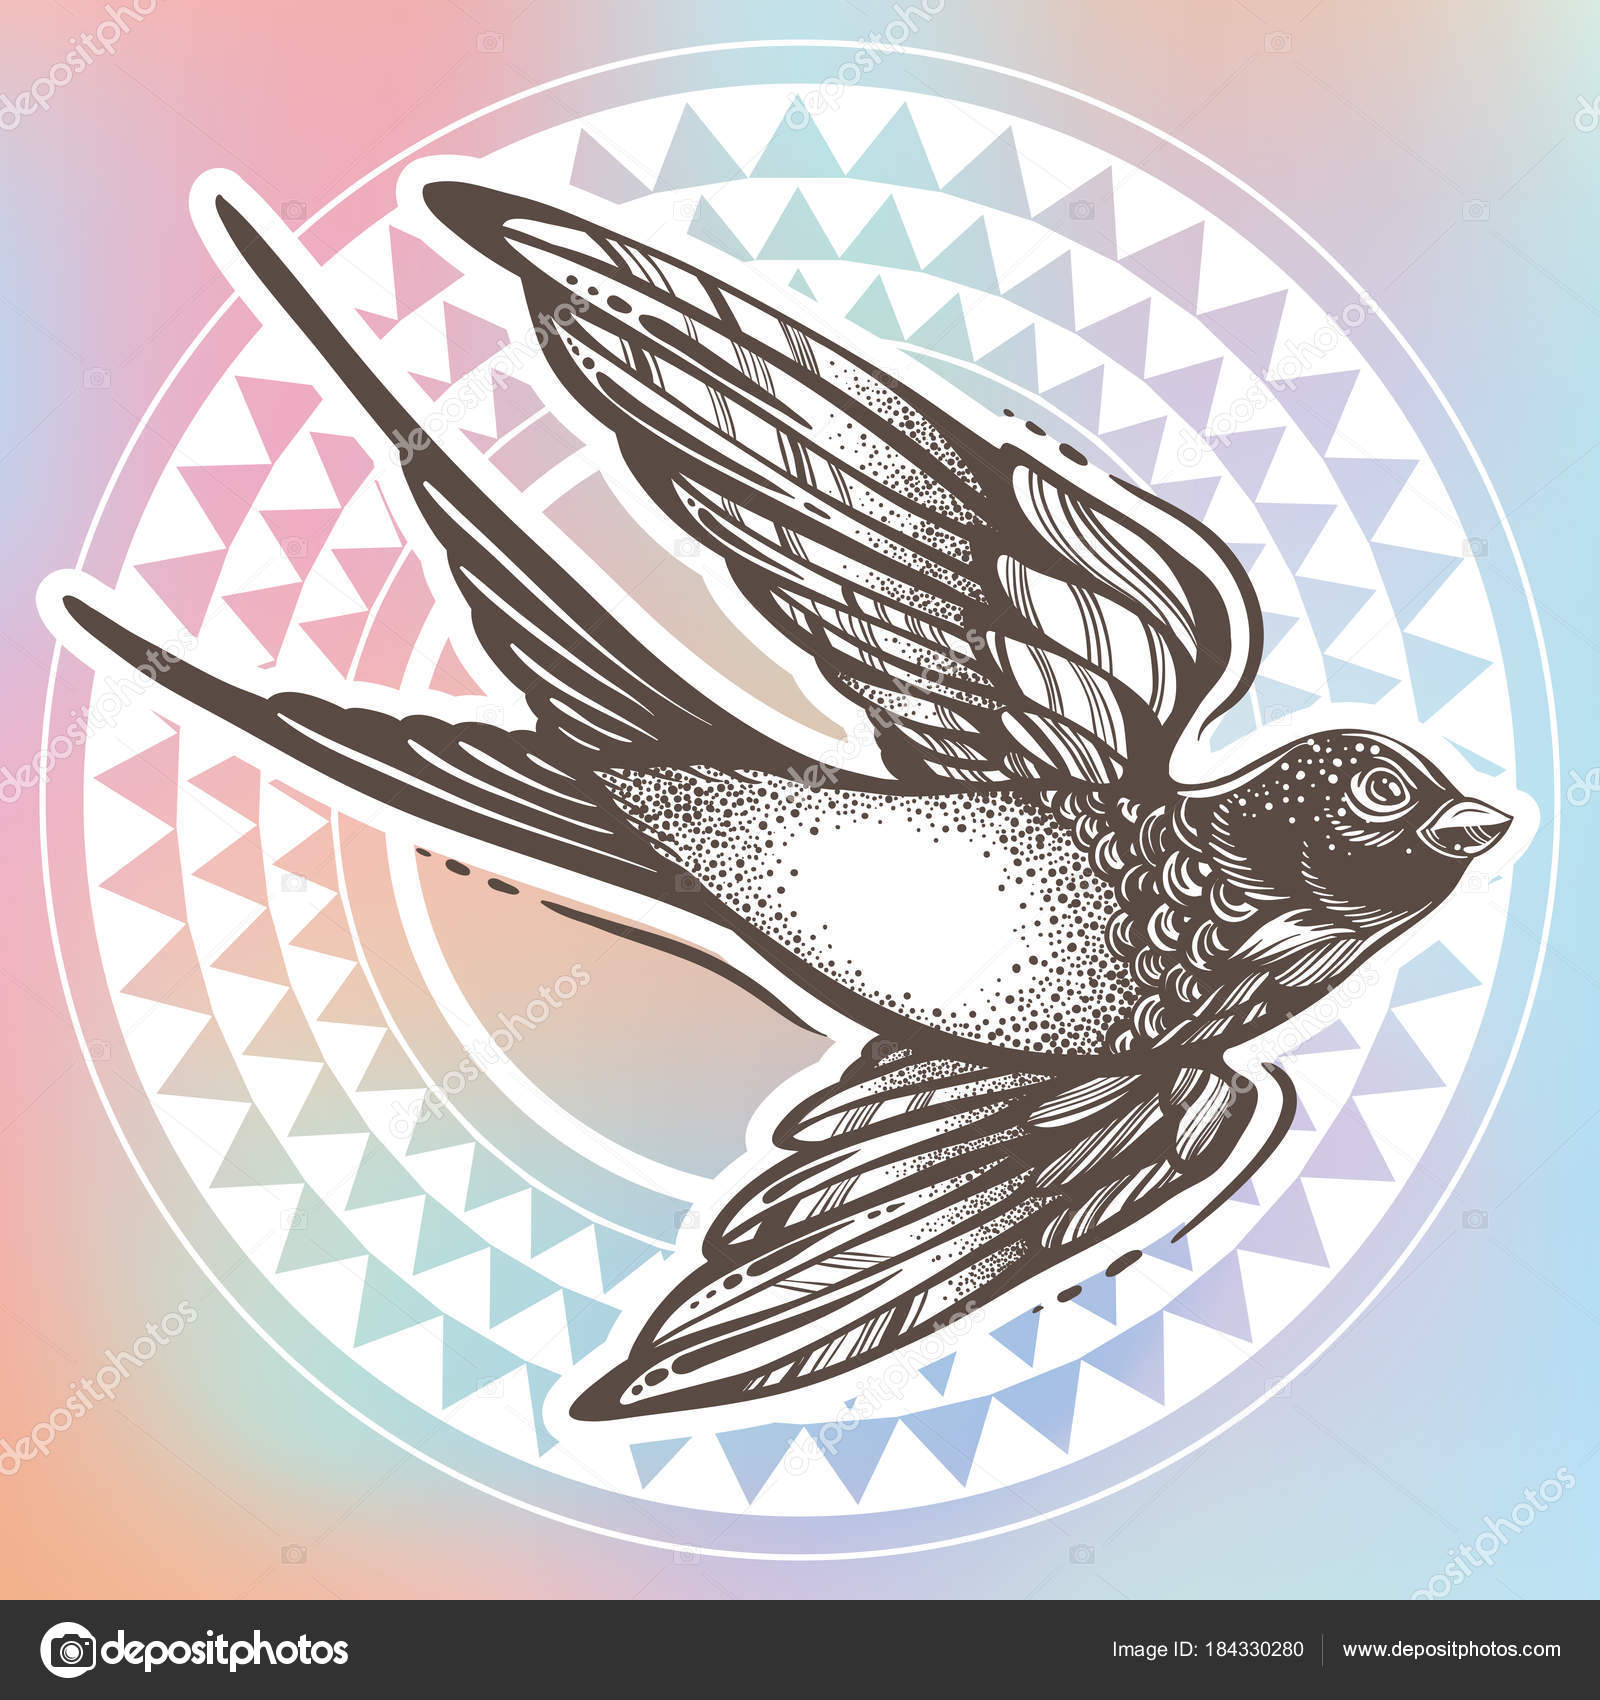 c1107c630deb7 Beautifully detailed vintage illustration with flying swallow bird over  tribal geometric pattern. Vector artwork isolated. Elegant tattoo art,  freedom, ...